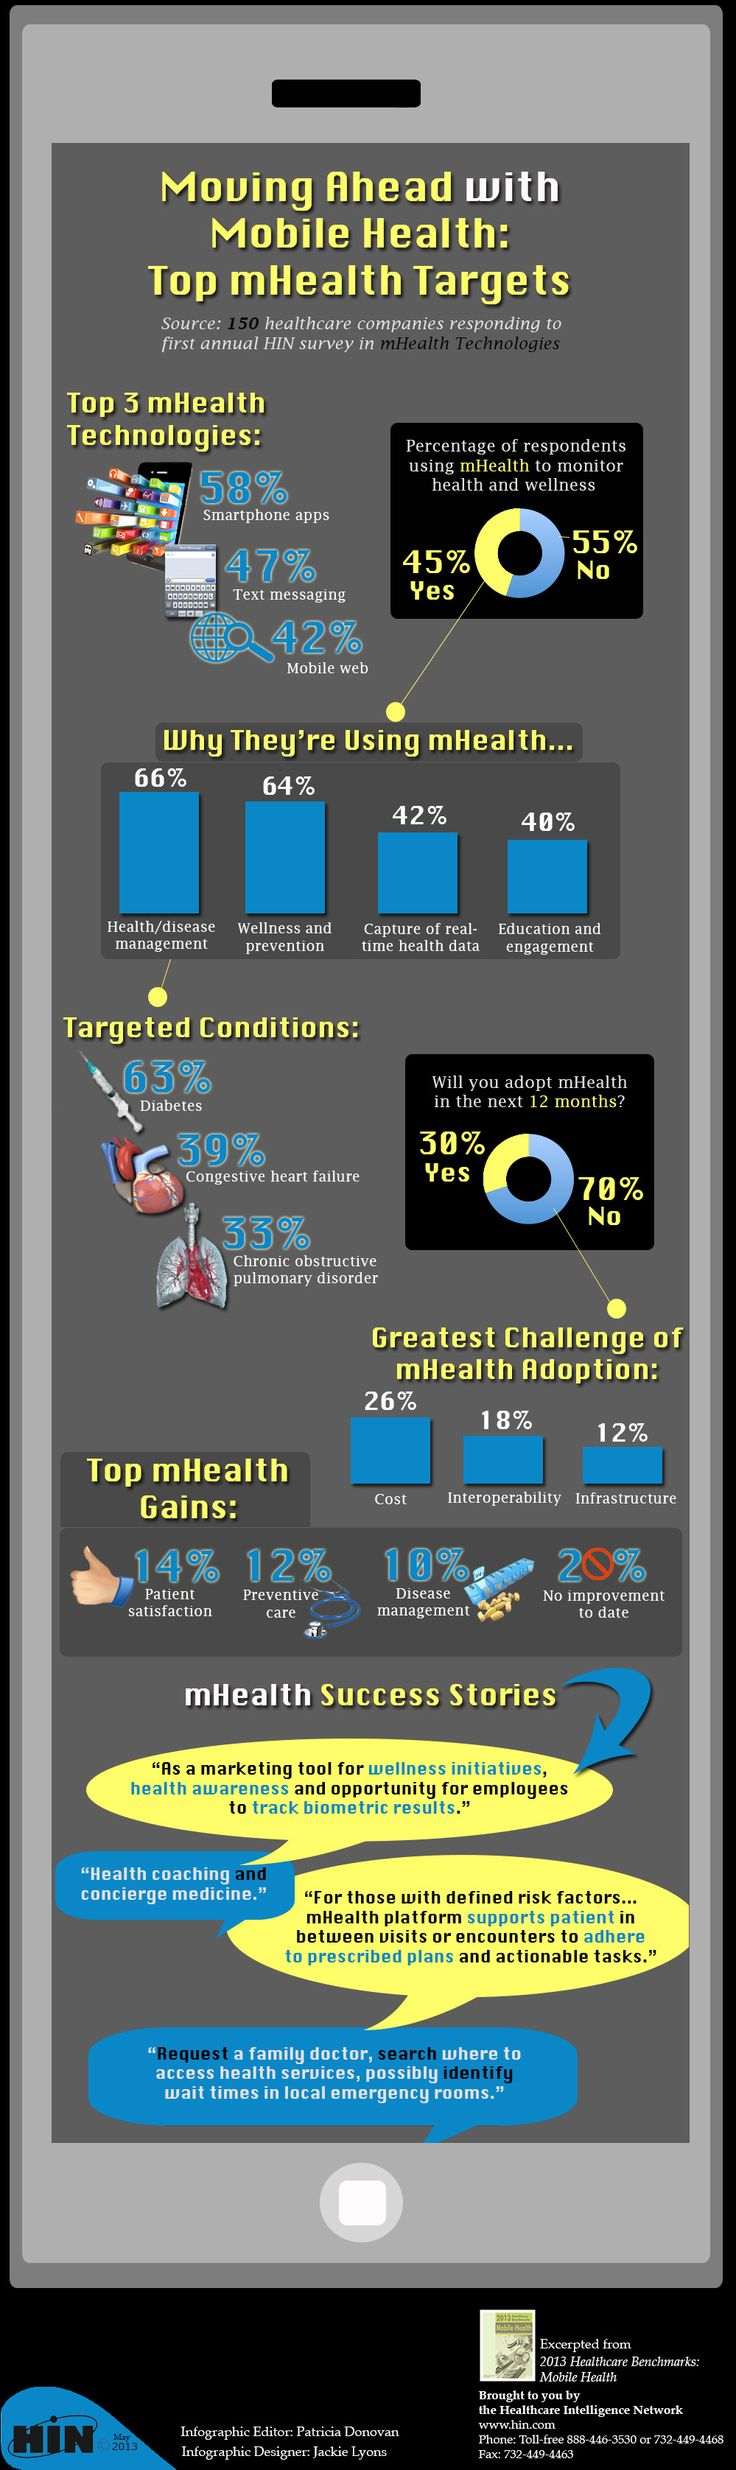 Mobile Health in 2013: Top mHealth Targets